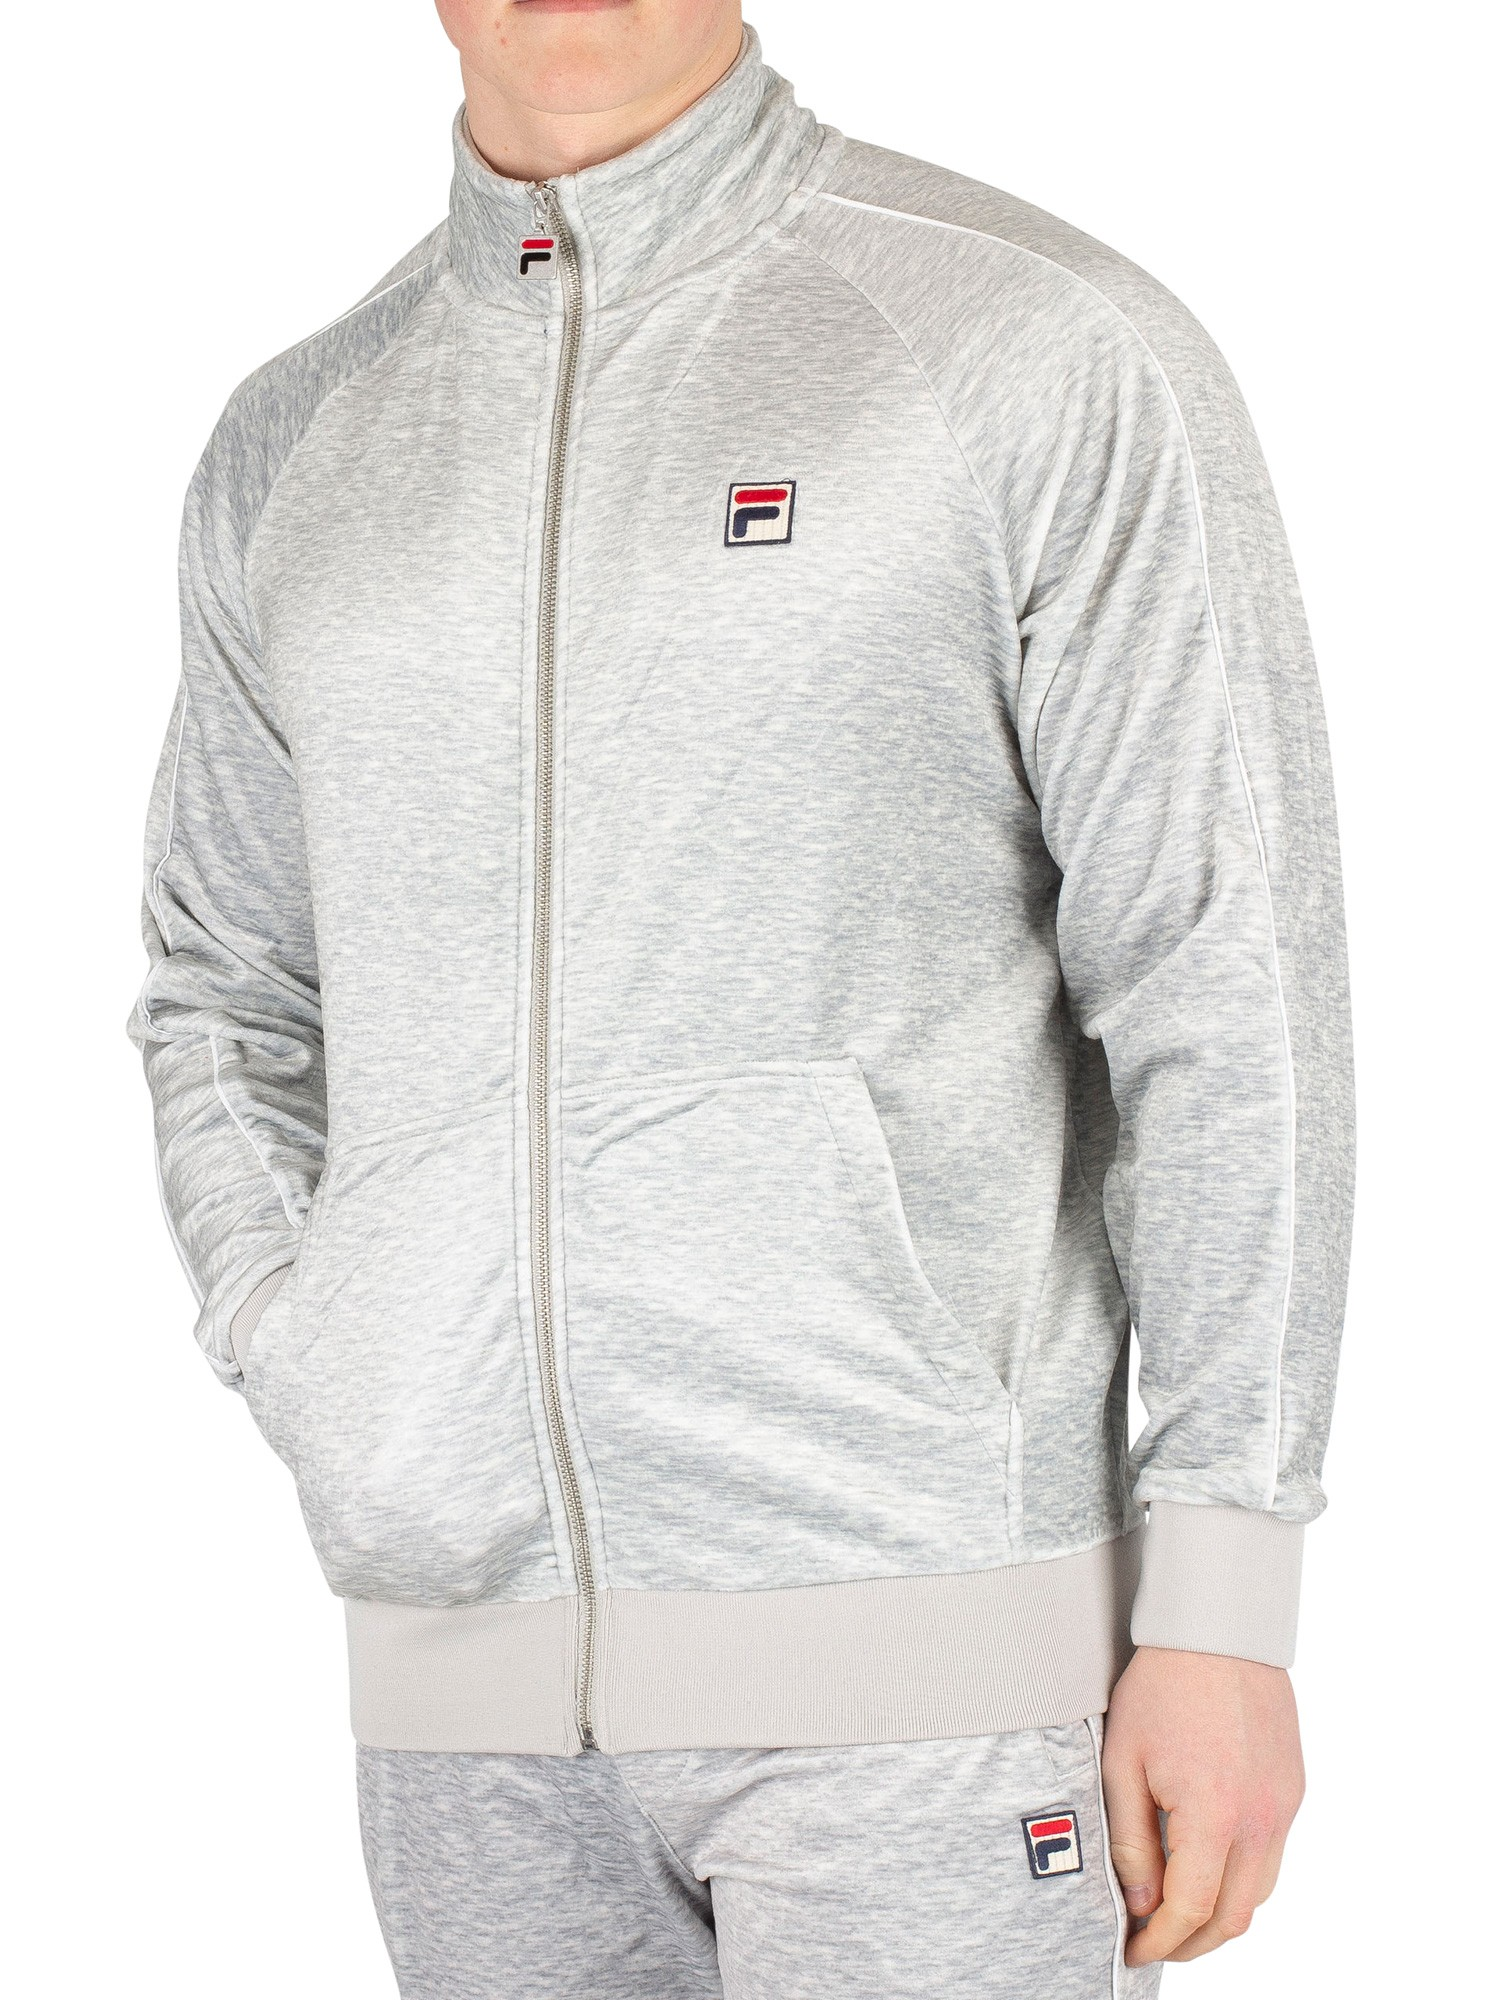 8dd61694a4f3 Cheap Fila Men's Clothing Sale   Up To 50% Off   Standout